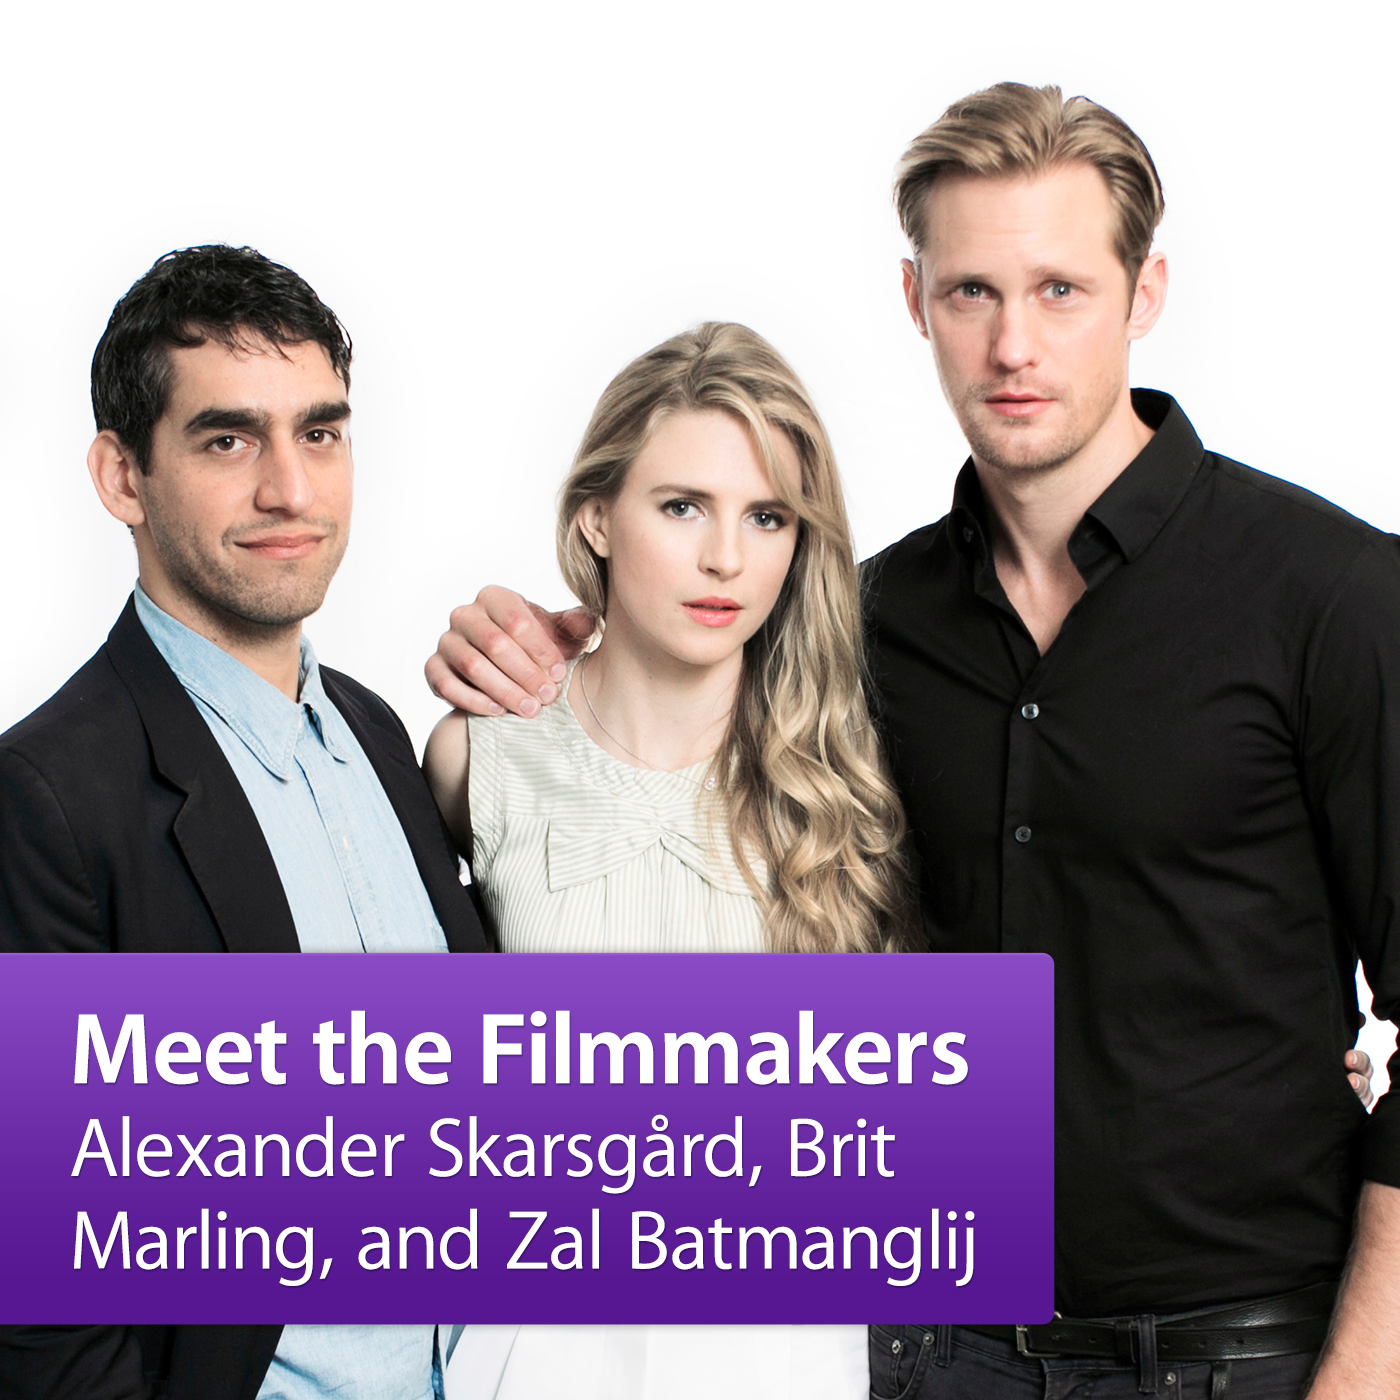 Alexander Skarsgård, Brit Marling, and Zal Batmanglij: Meet the Filmmakers